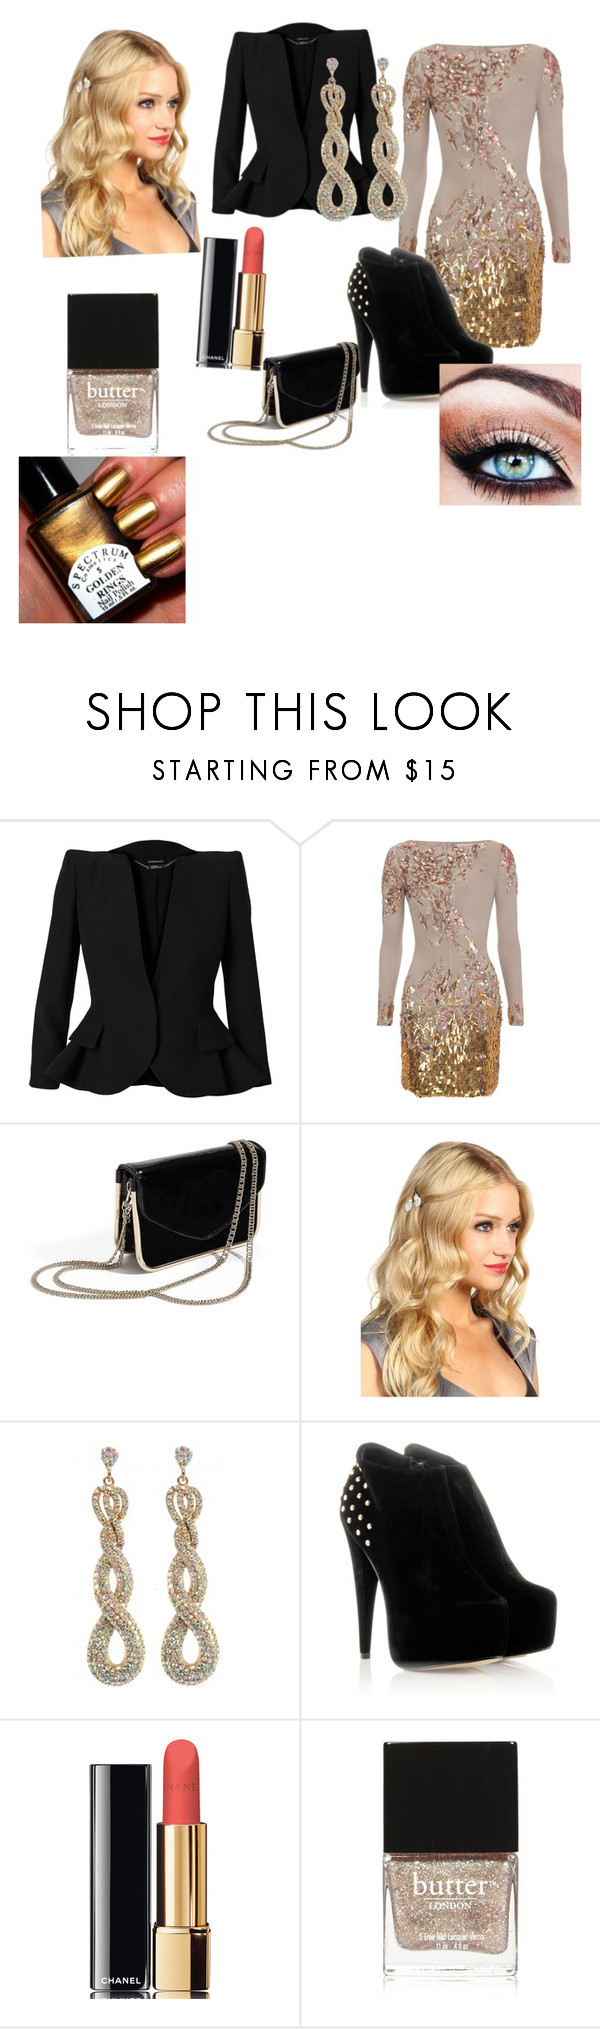 """""""New Year's Eve Party"""" by smallleaf115 ❤ liked on Polyvore featuring Alexander McQueen, Matthew Williamson, GUESS by Marciano, Jane Tran, aB, Chanel and Butter London"""